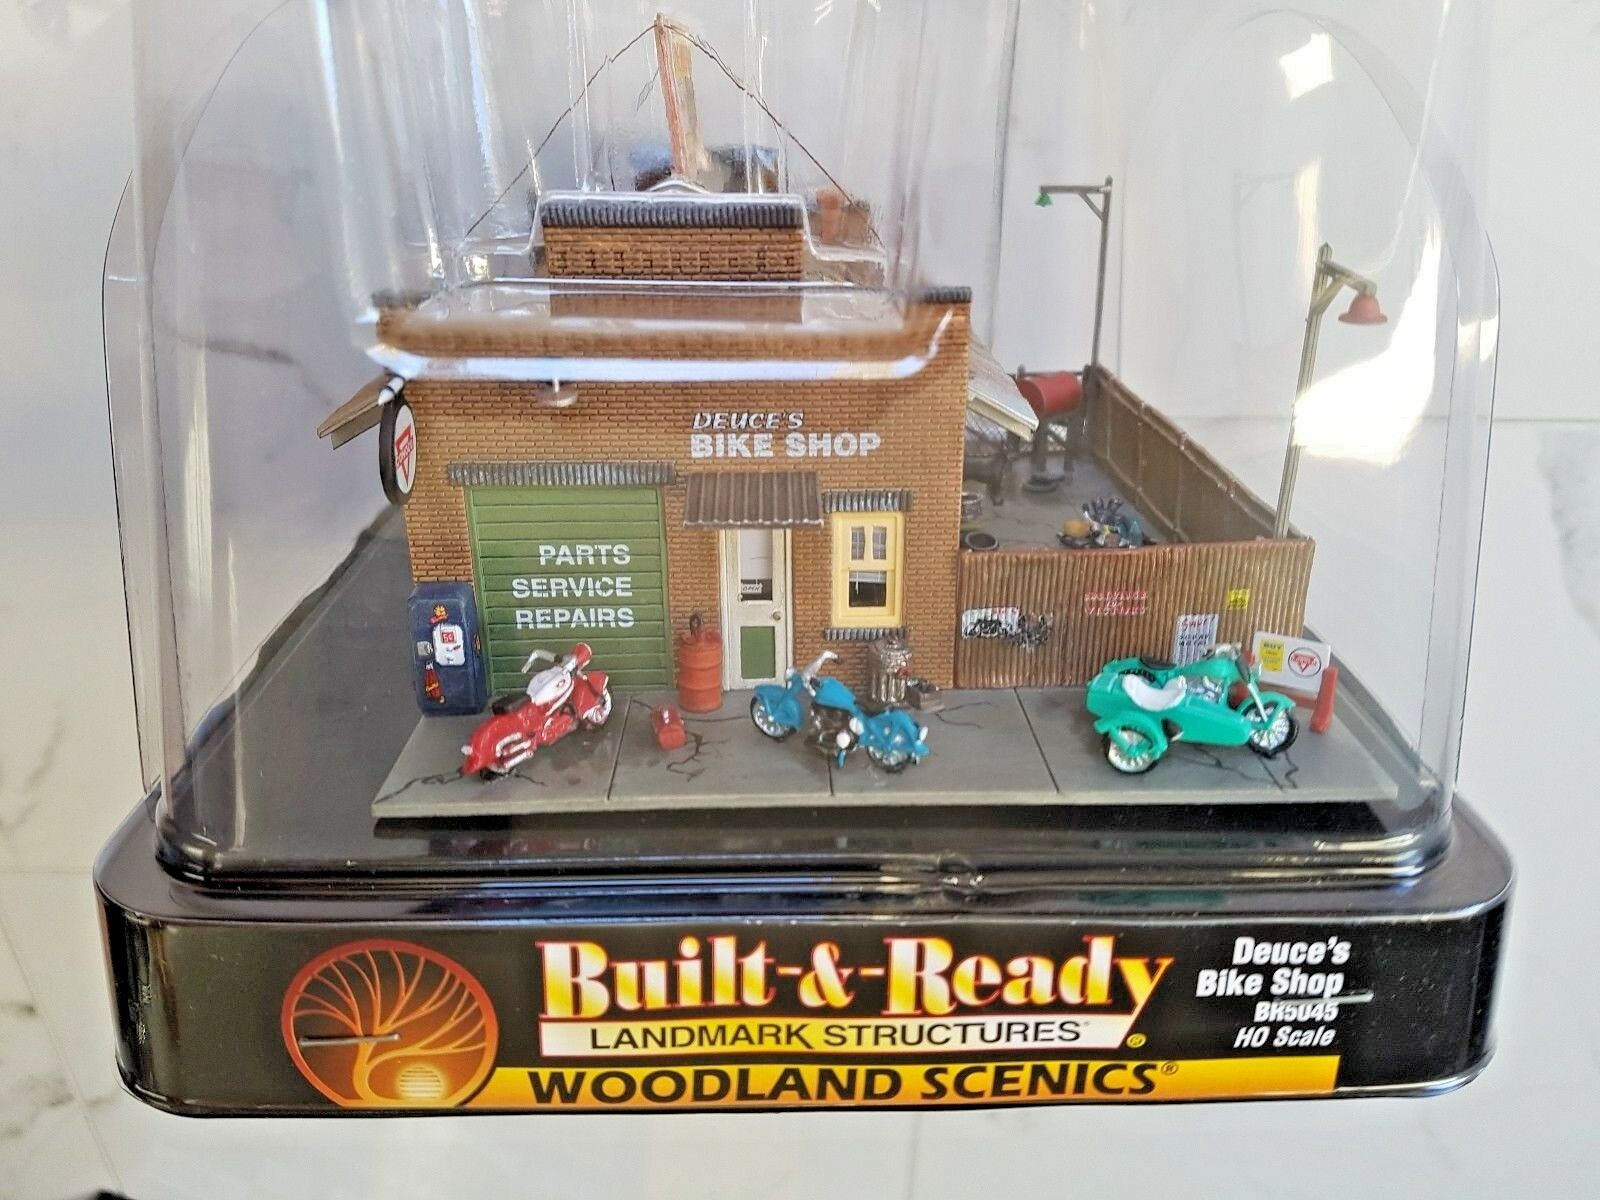 Woodland Scenics 1 87 HO Scale Built & Ready Deuce's Bike Shop Item BR 5045 F S